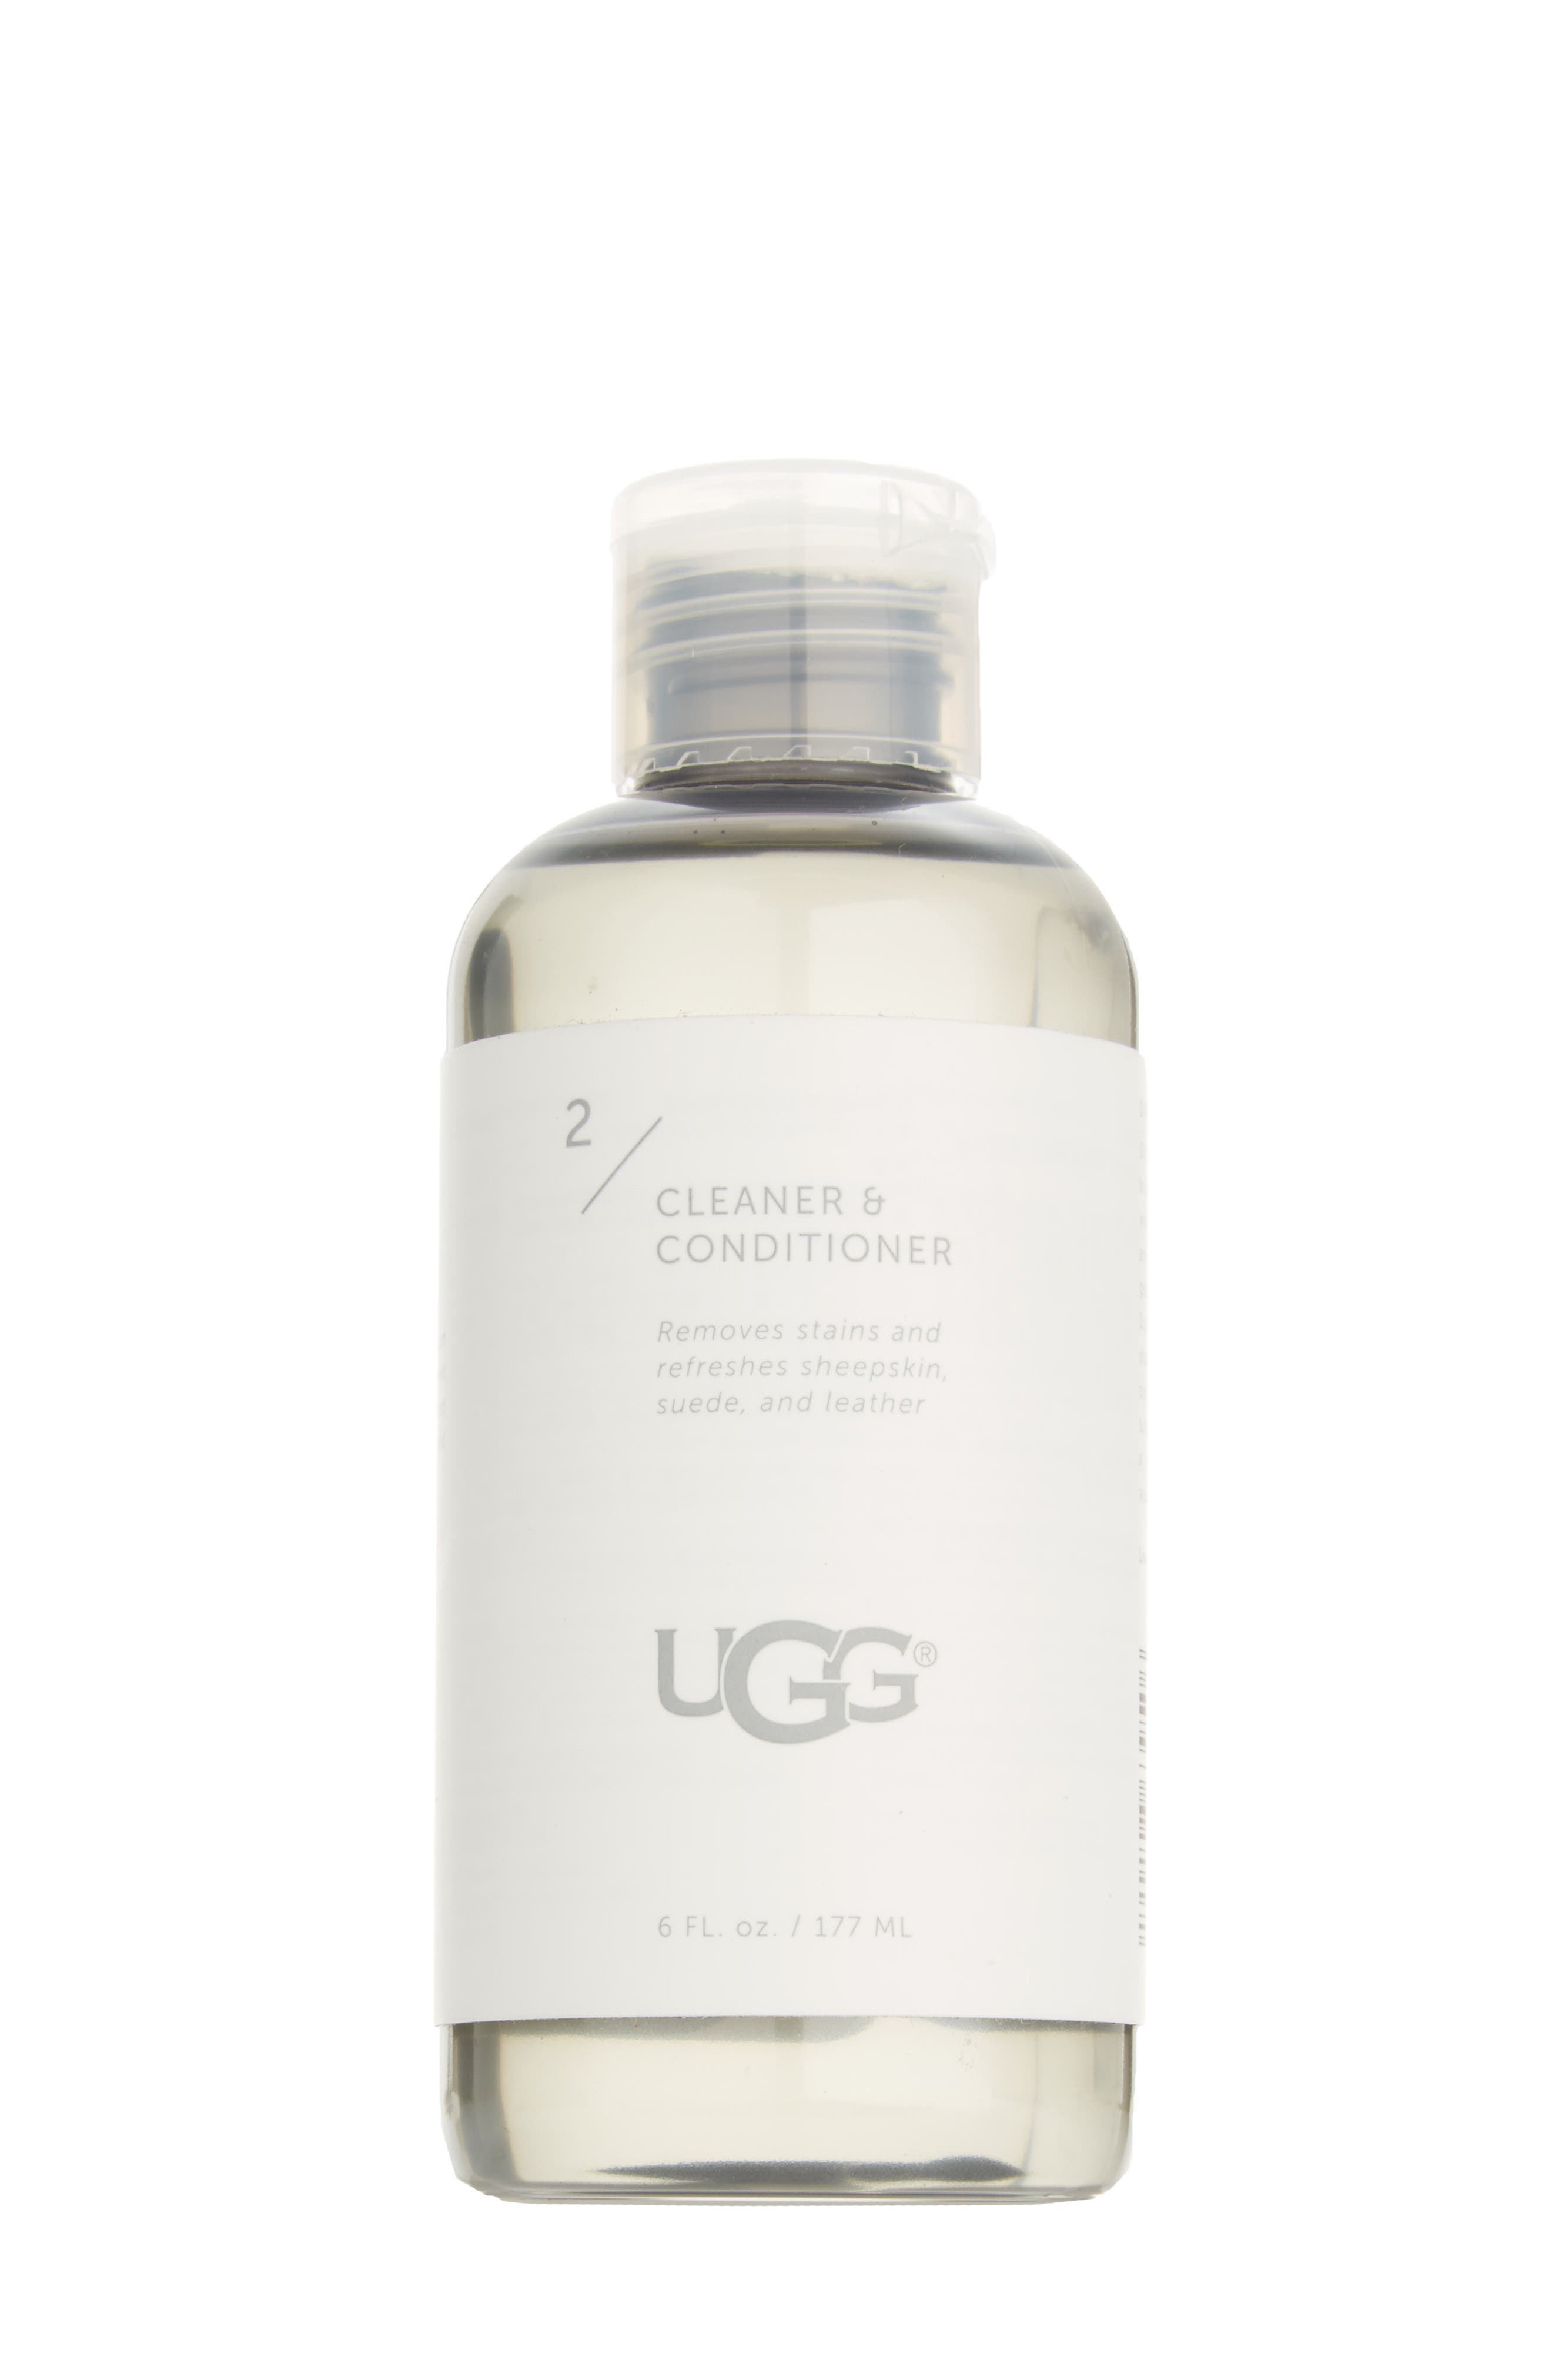 ugg cleaner and conditioner